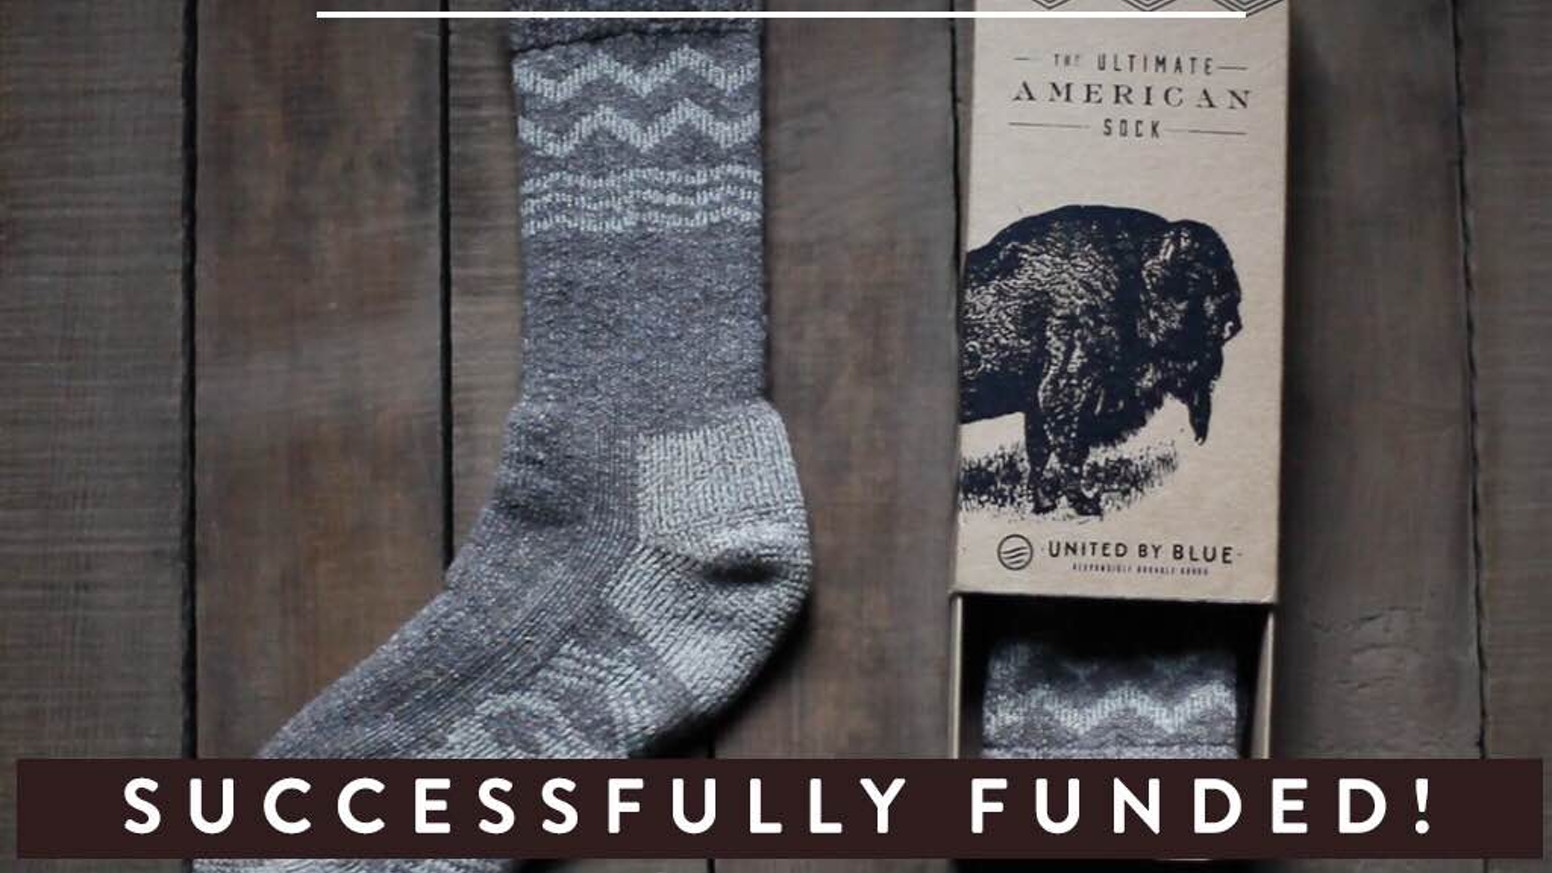 Softer than cashmere and warmer than wool, we created a sock from Bison down that will keep your feet warm and dry all winter long.